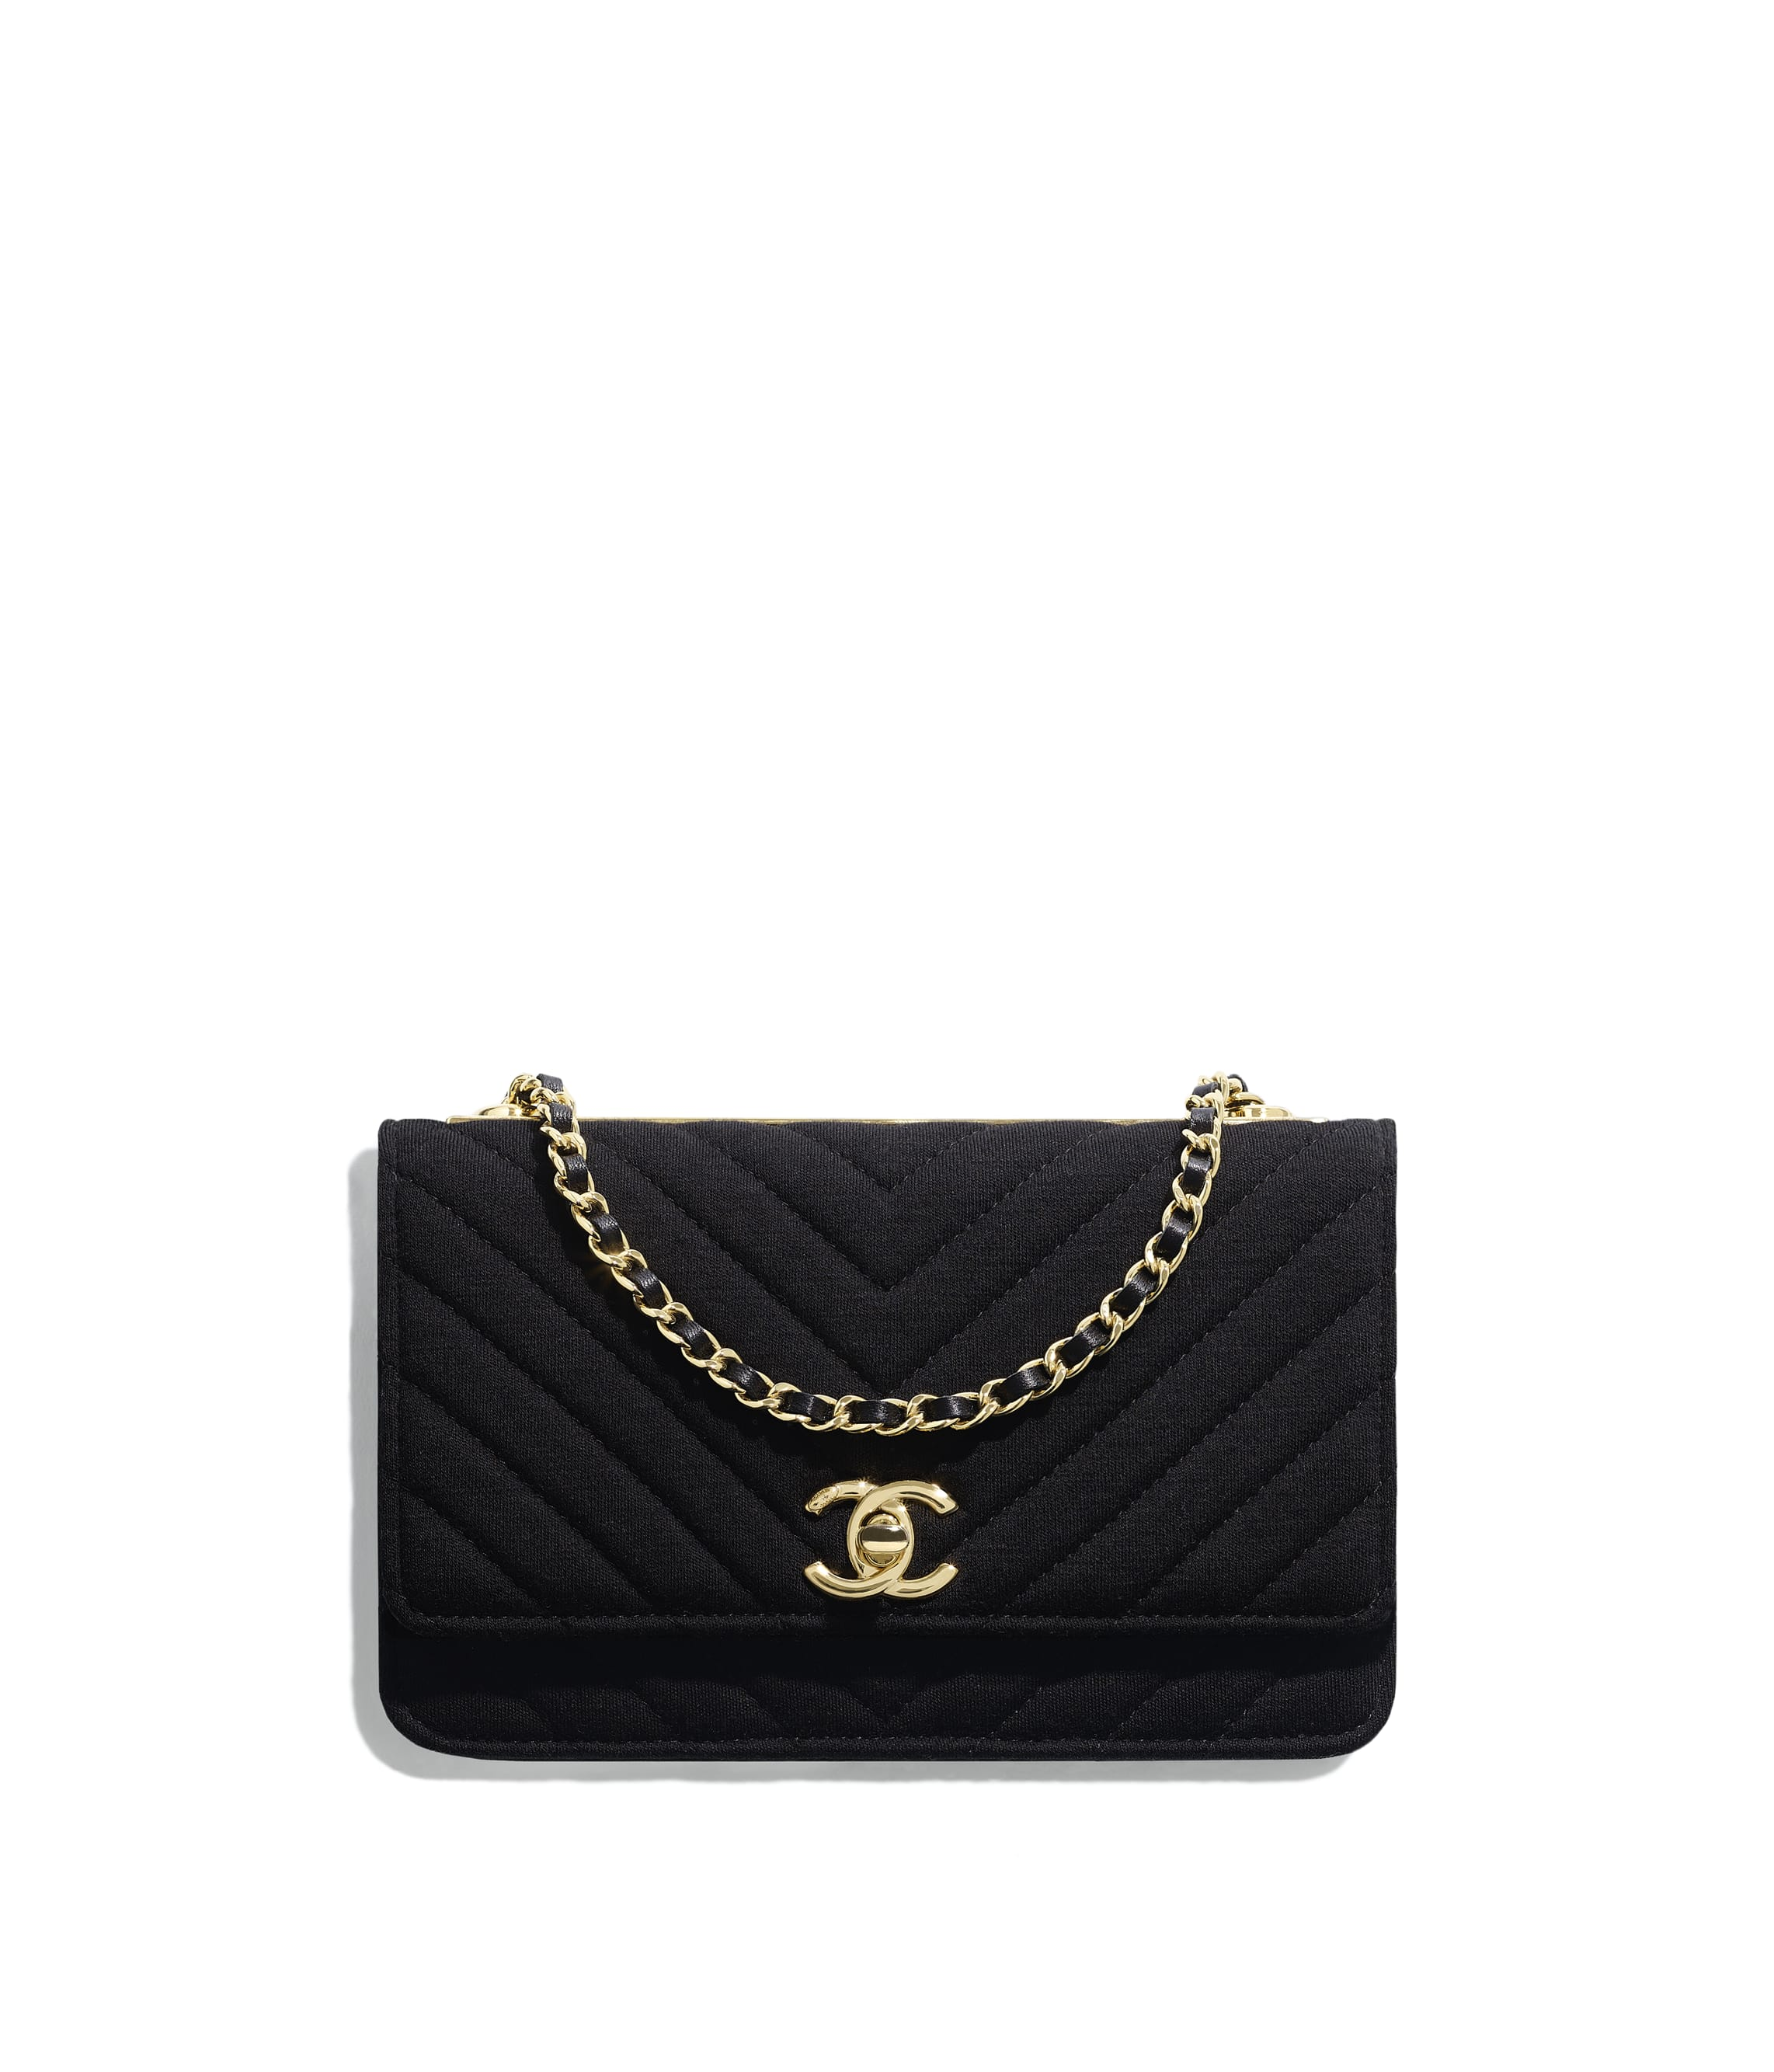 0f9e7a5cfd0d Wallet on Chain, jersey & gold-tone metal, black - CHANEL